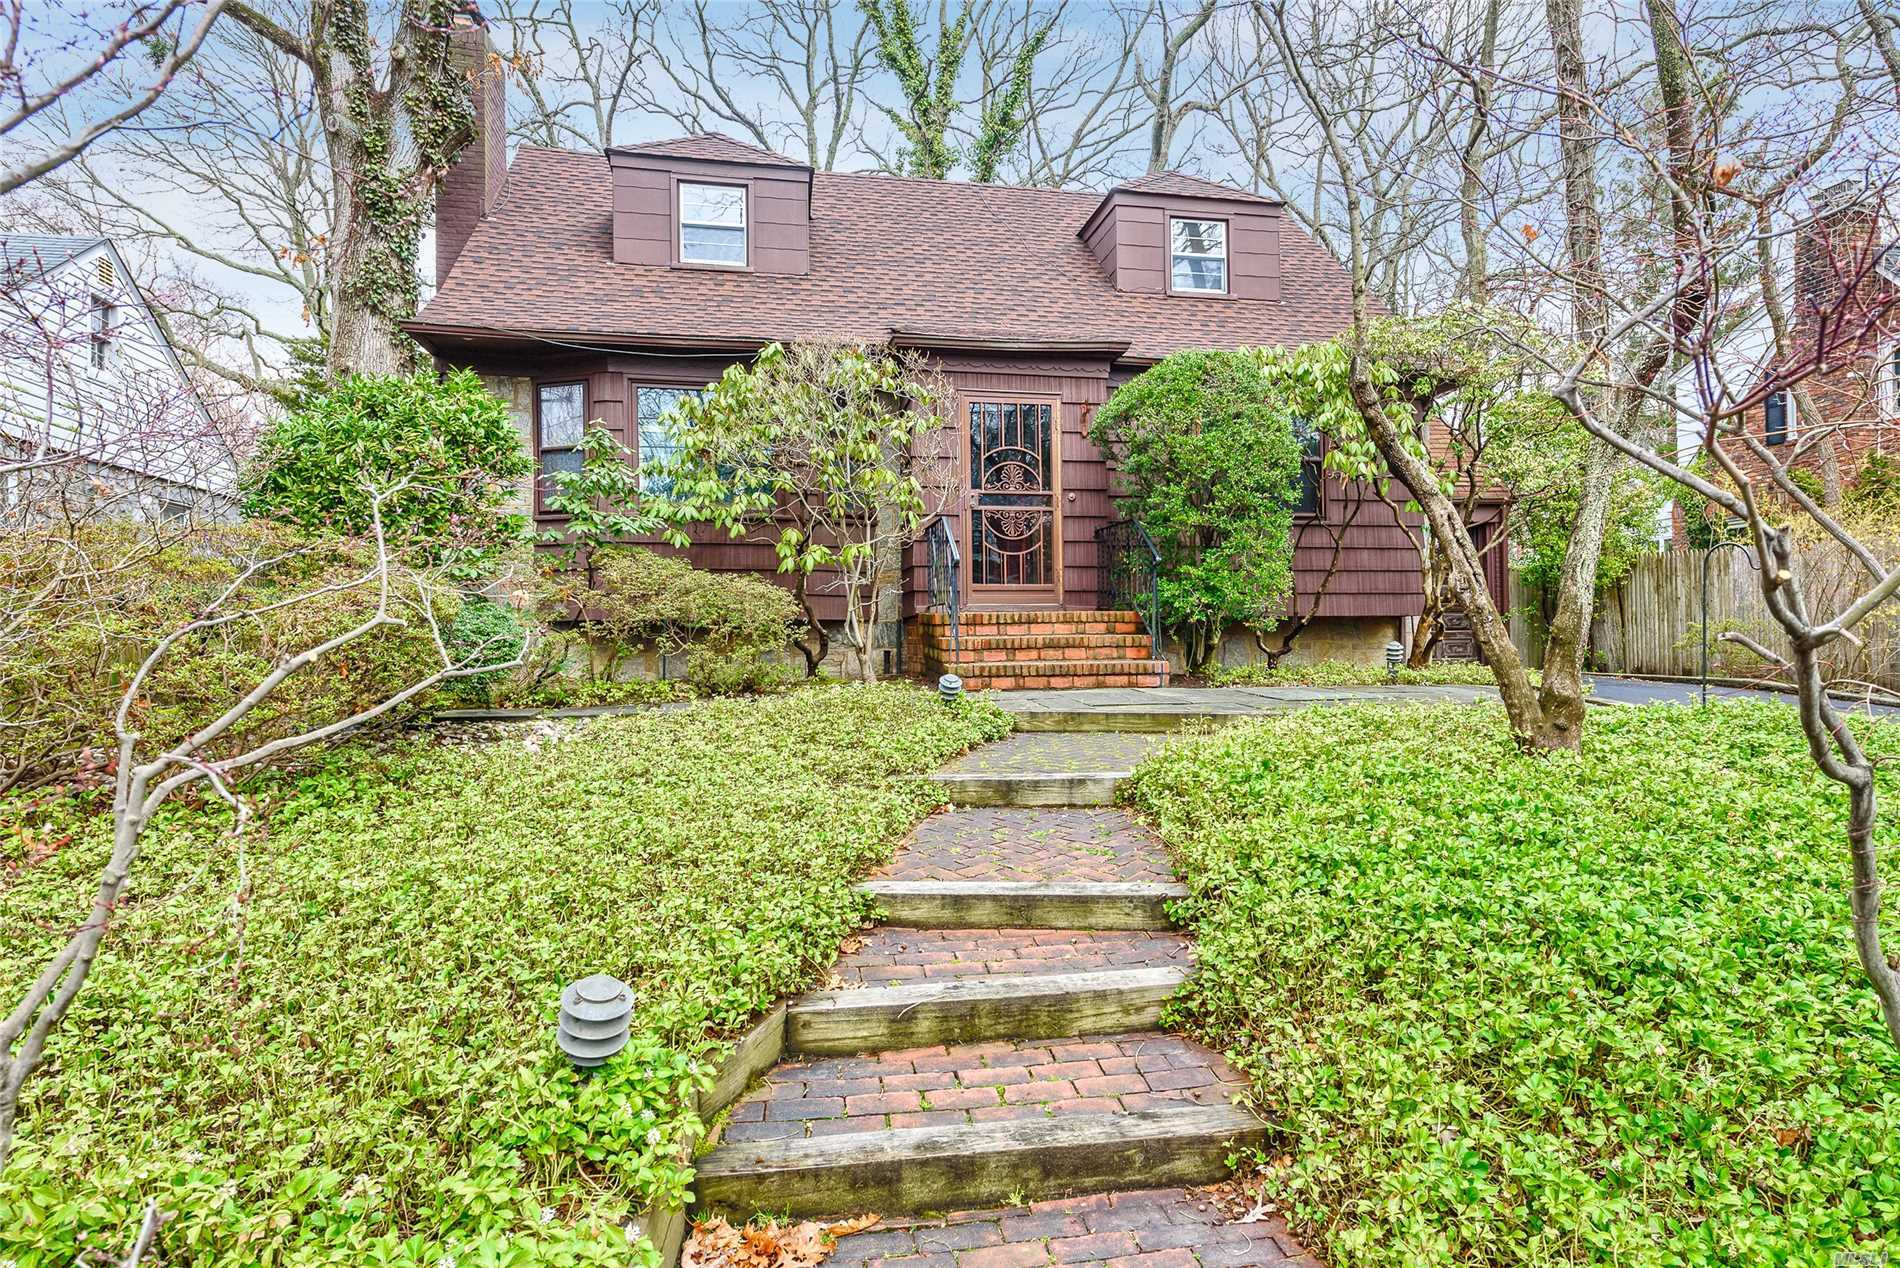 Great Expanded Cape in the heart of the woods on a quiet tree lined street. Wood Burning fireplace in Living Room. Stove in Den that leads to lovely yard. Hardwood floors thru out. Updated EIK and Master Bath. 2nd floor is a great Master suite with tons of closets, and a sitting area. French drain in basement. Make this home your own.